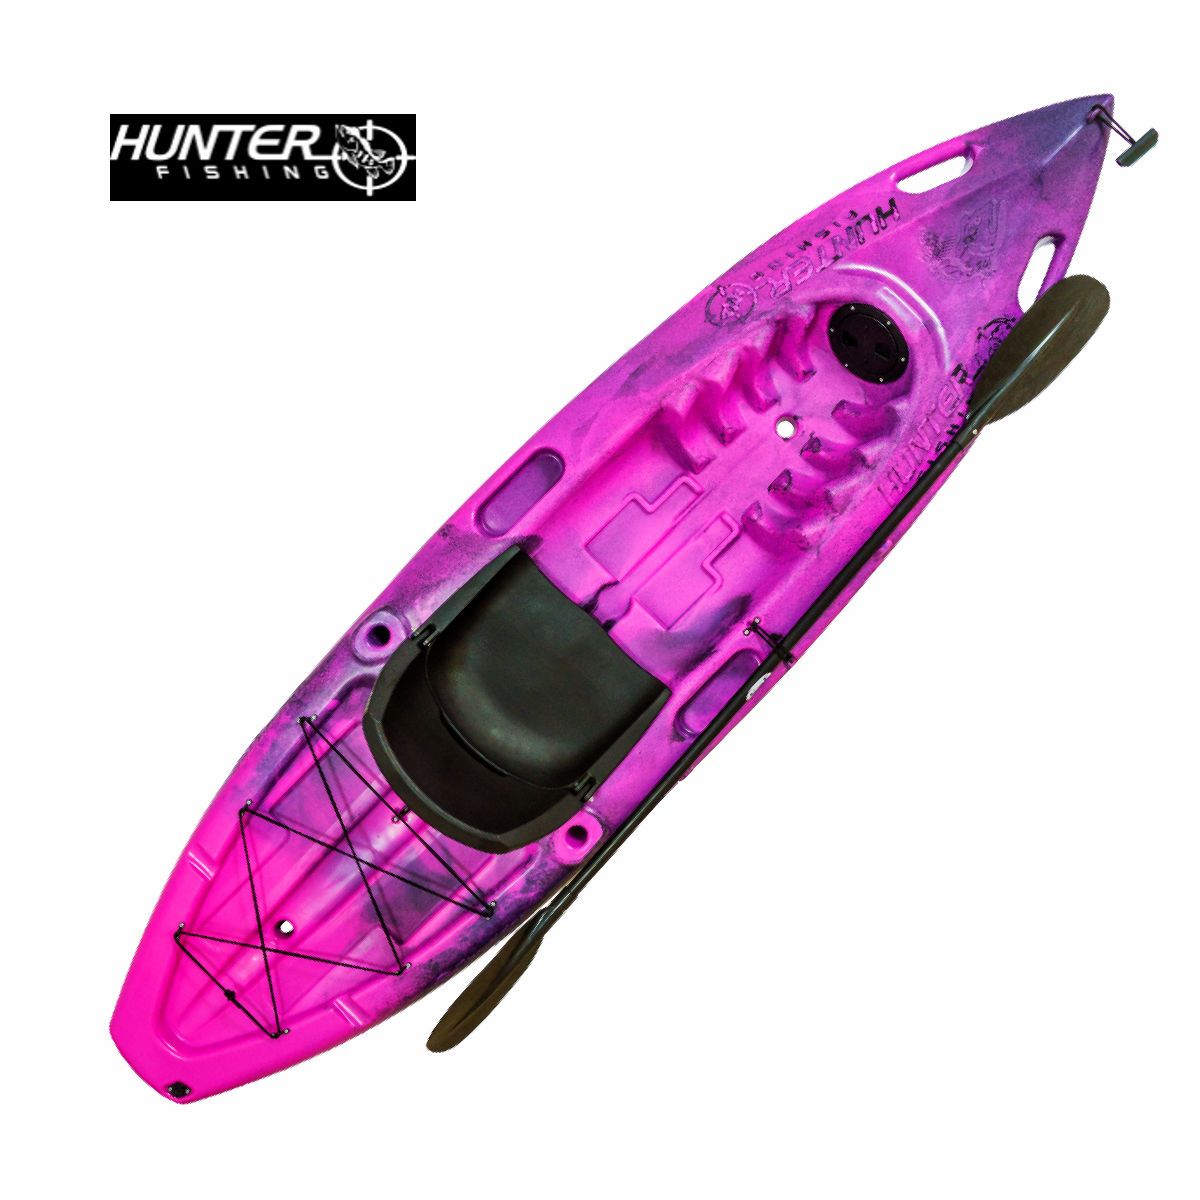 Caiaque Brudden Hunter Fishing UP - Pink com Preto